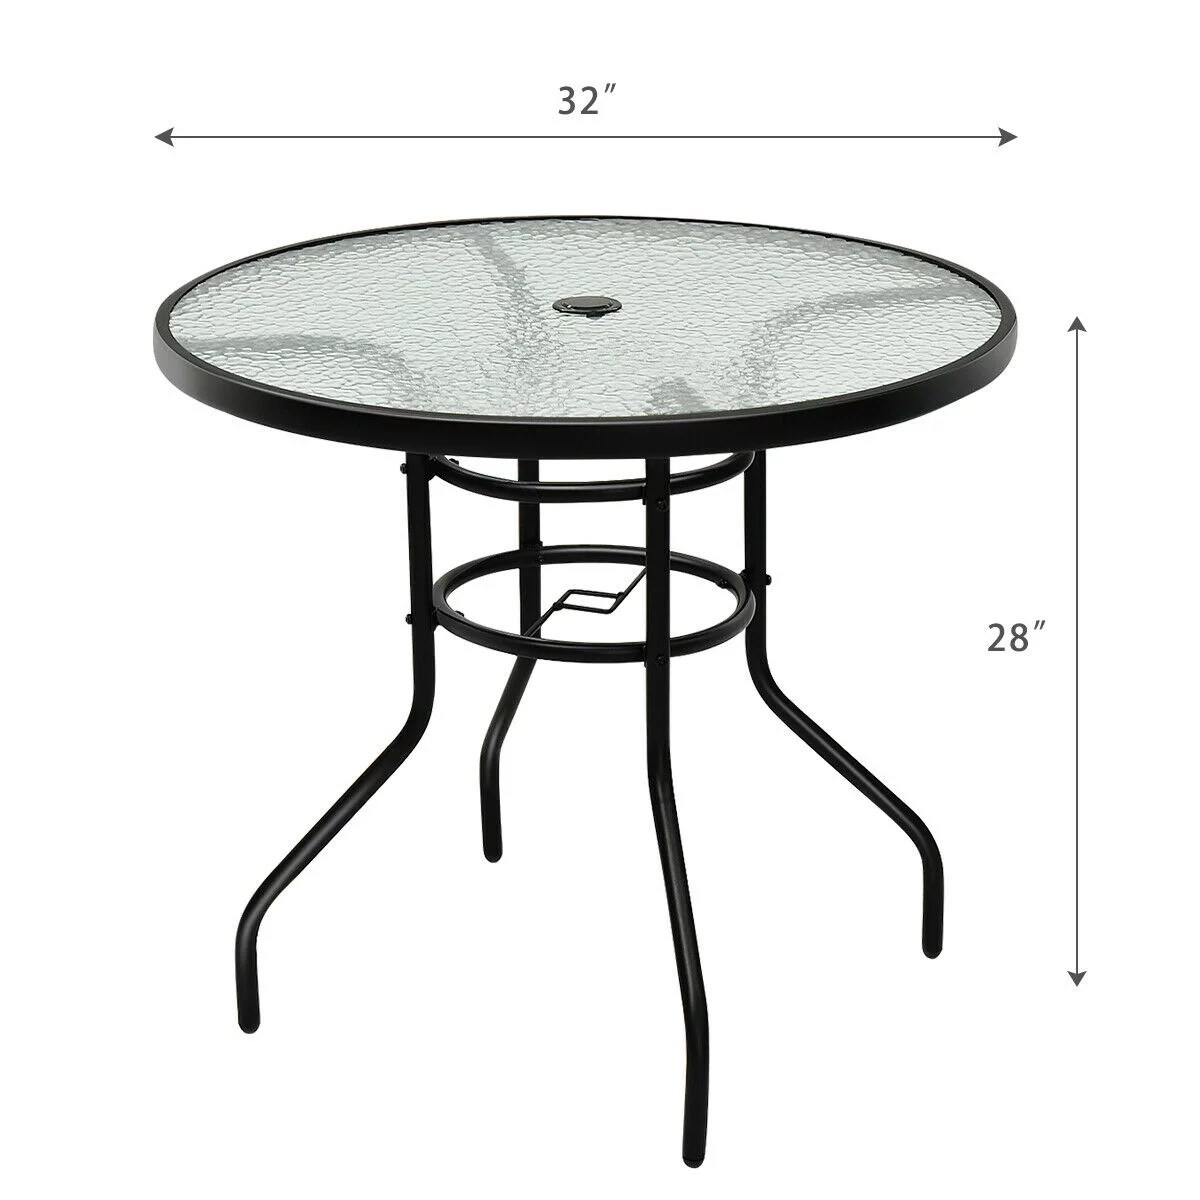 31 5 patio round table tempered glass steel frame outdoor pool yard